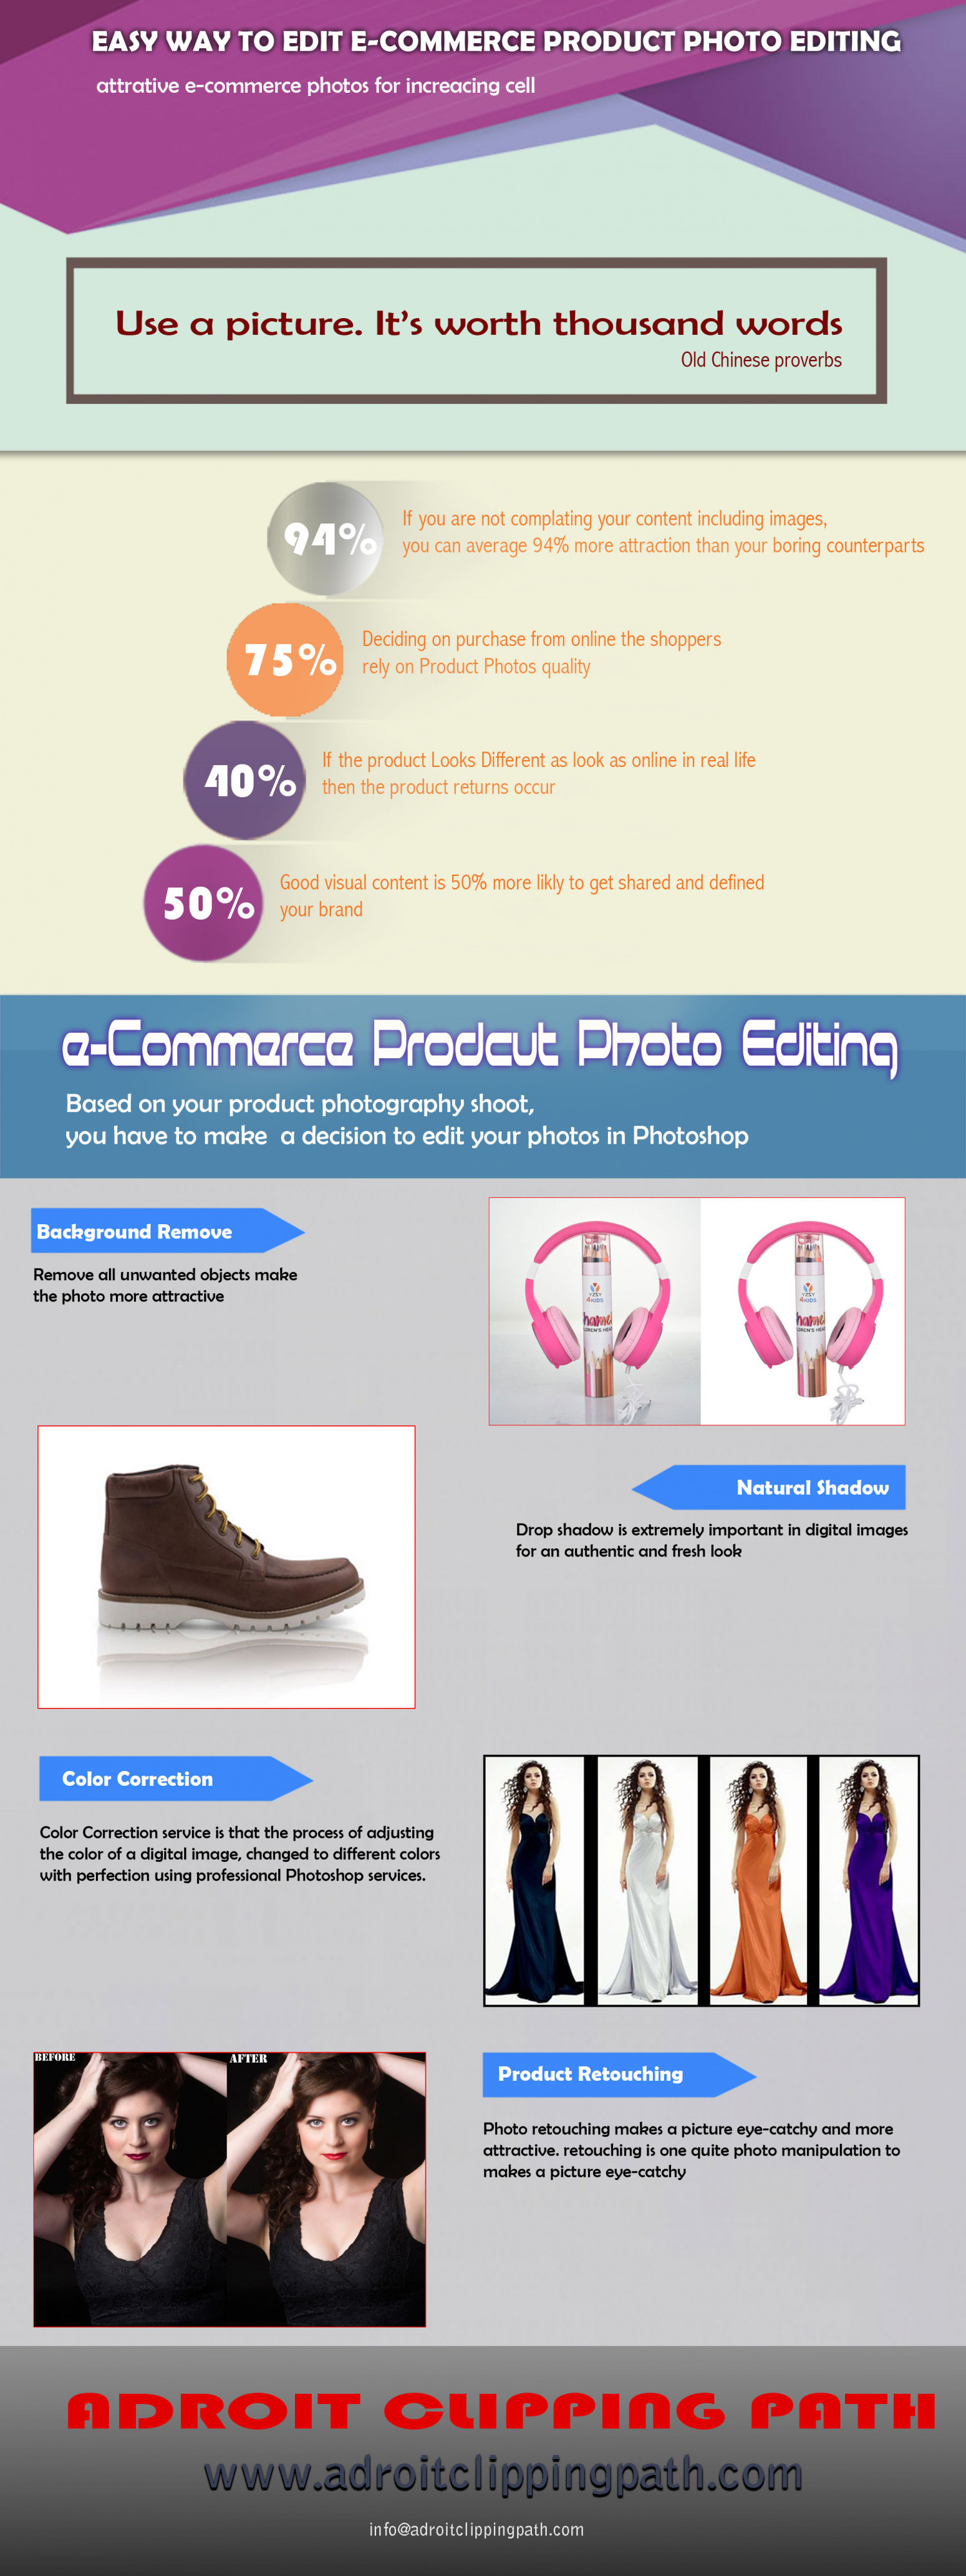 Easy tips for perfect ecommerce product photo editing Infographic